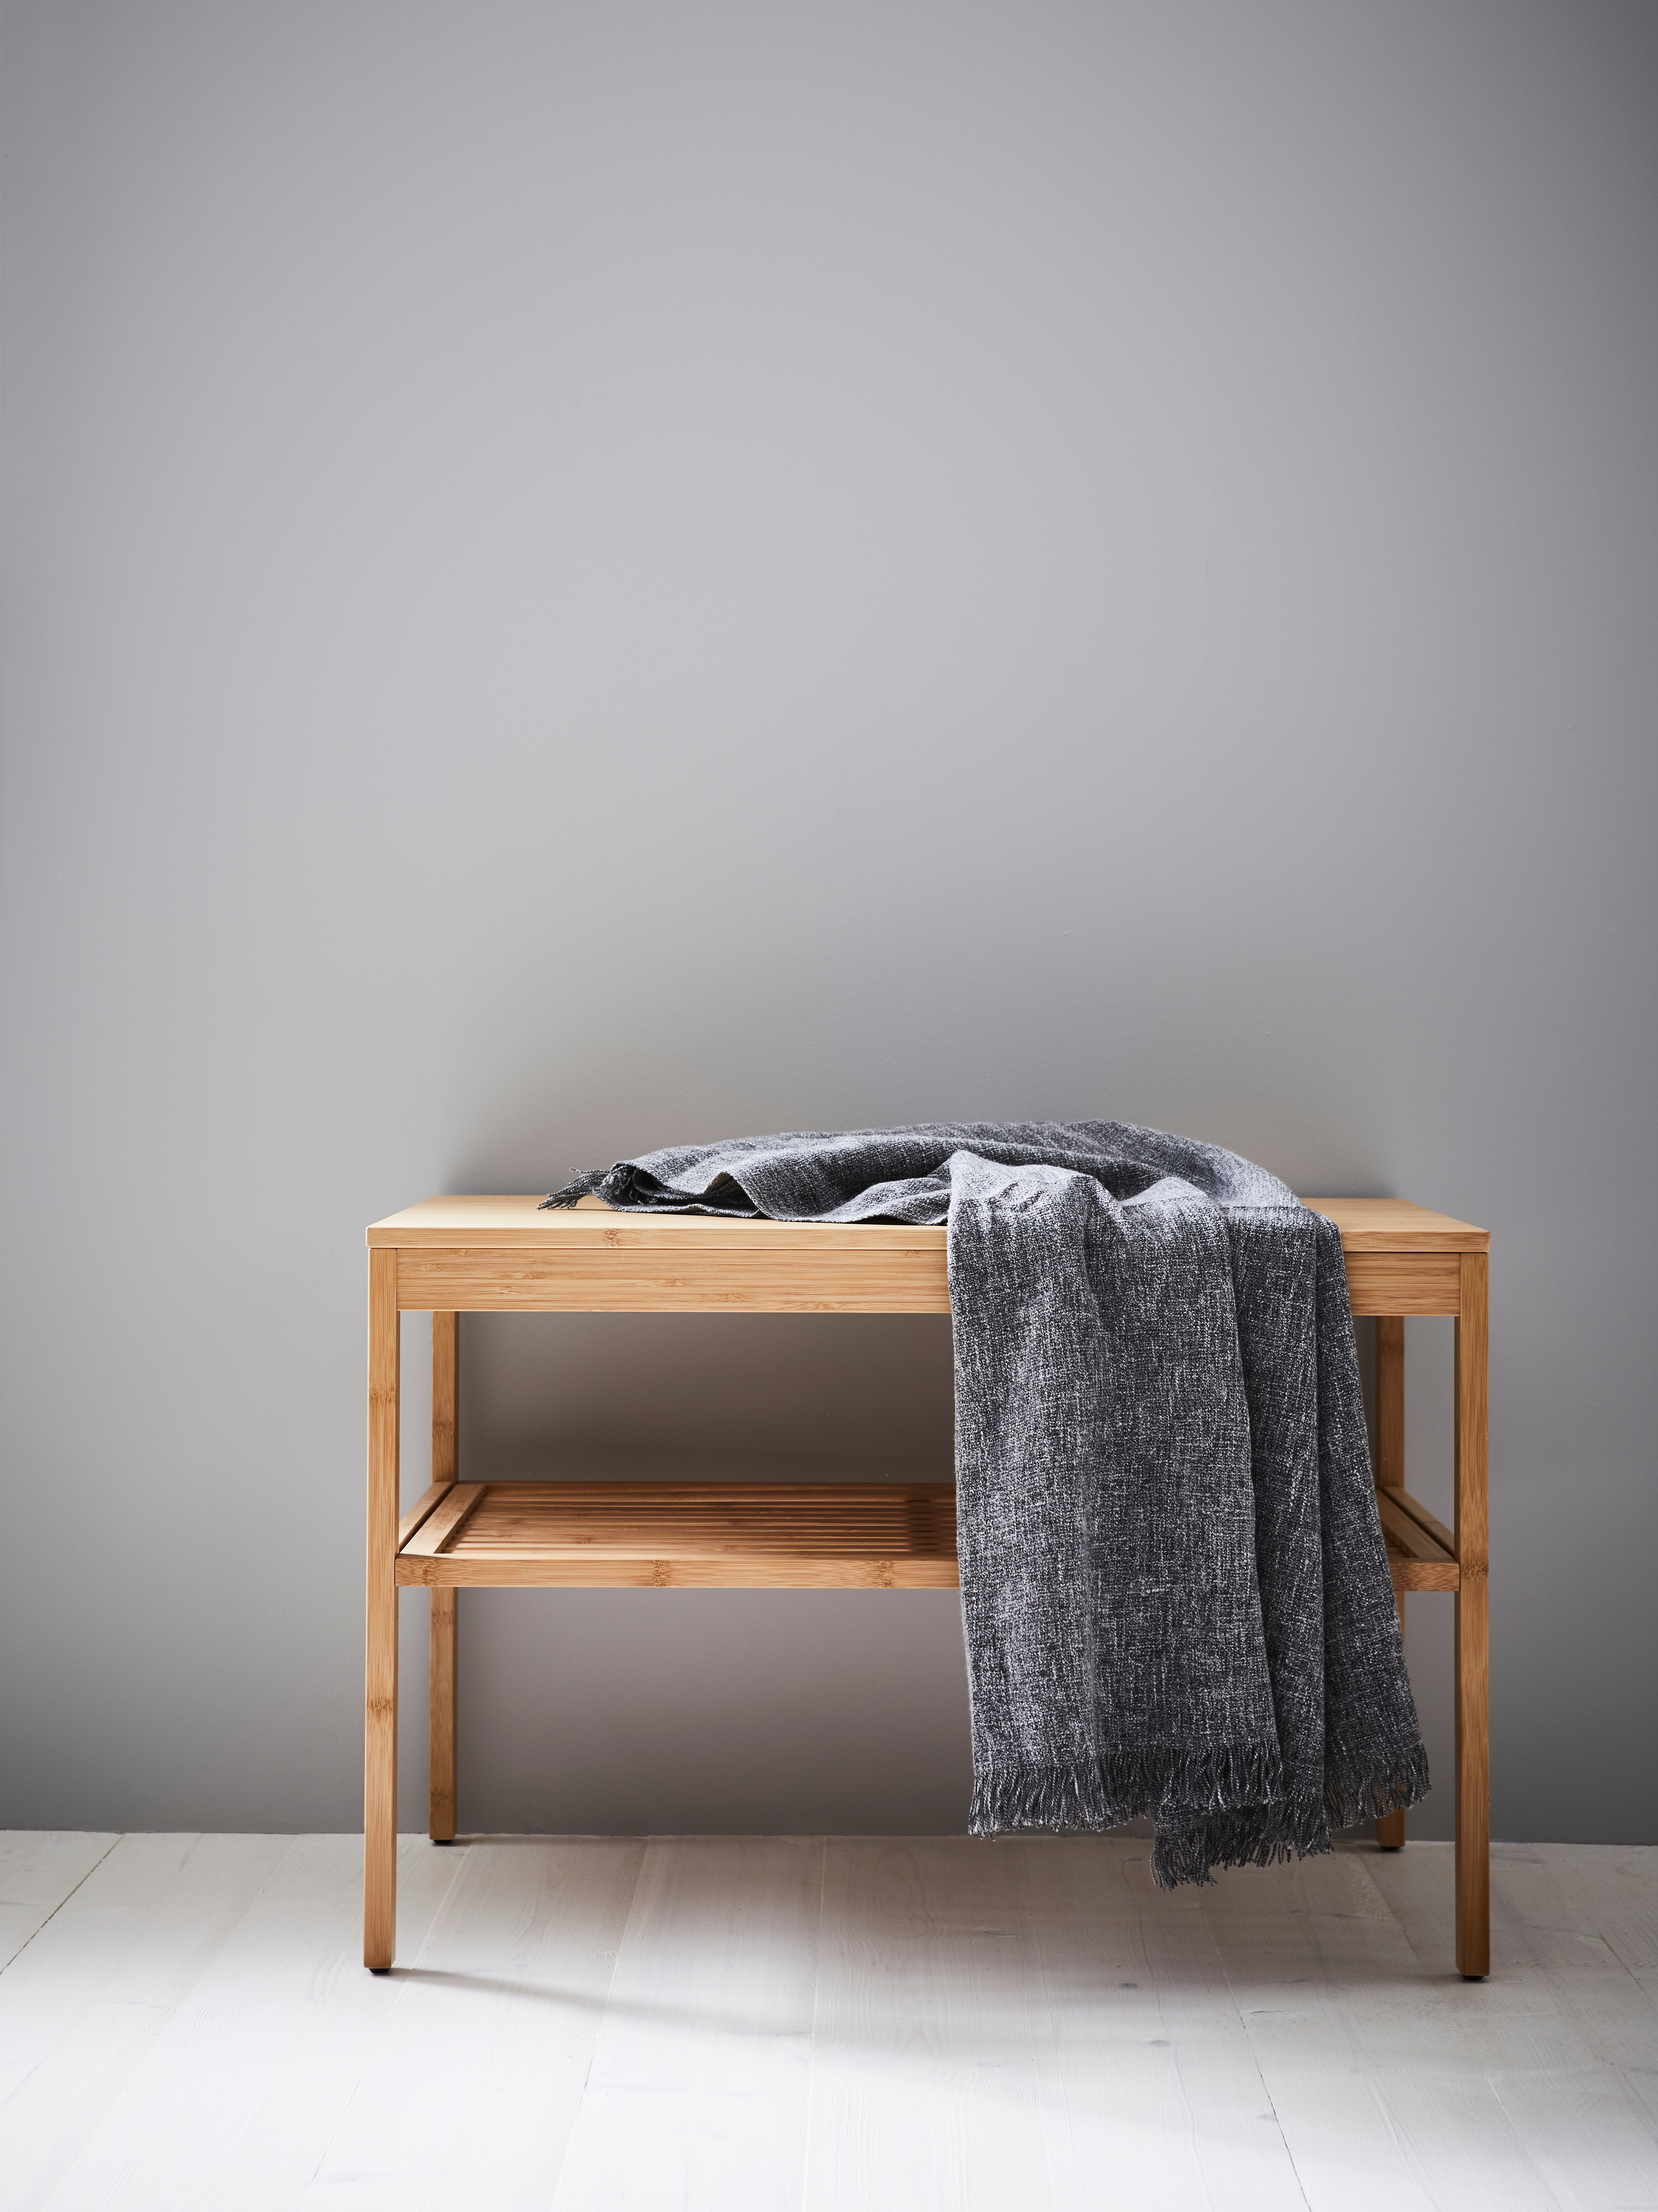 A rectangular, bamboo NORDKISA bench has a dark grey throw draped across it and stands against a grey wall on a wooden floor.